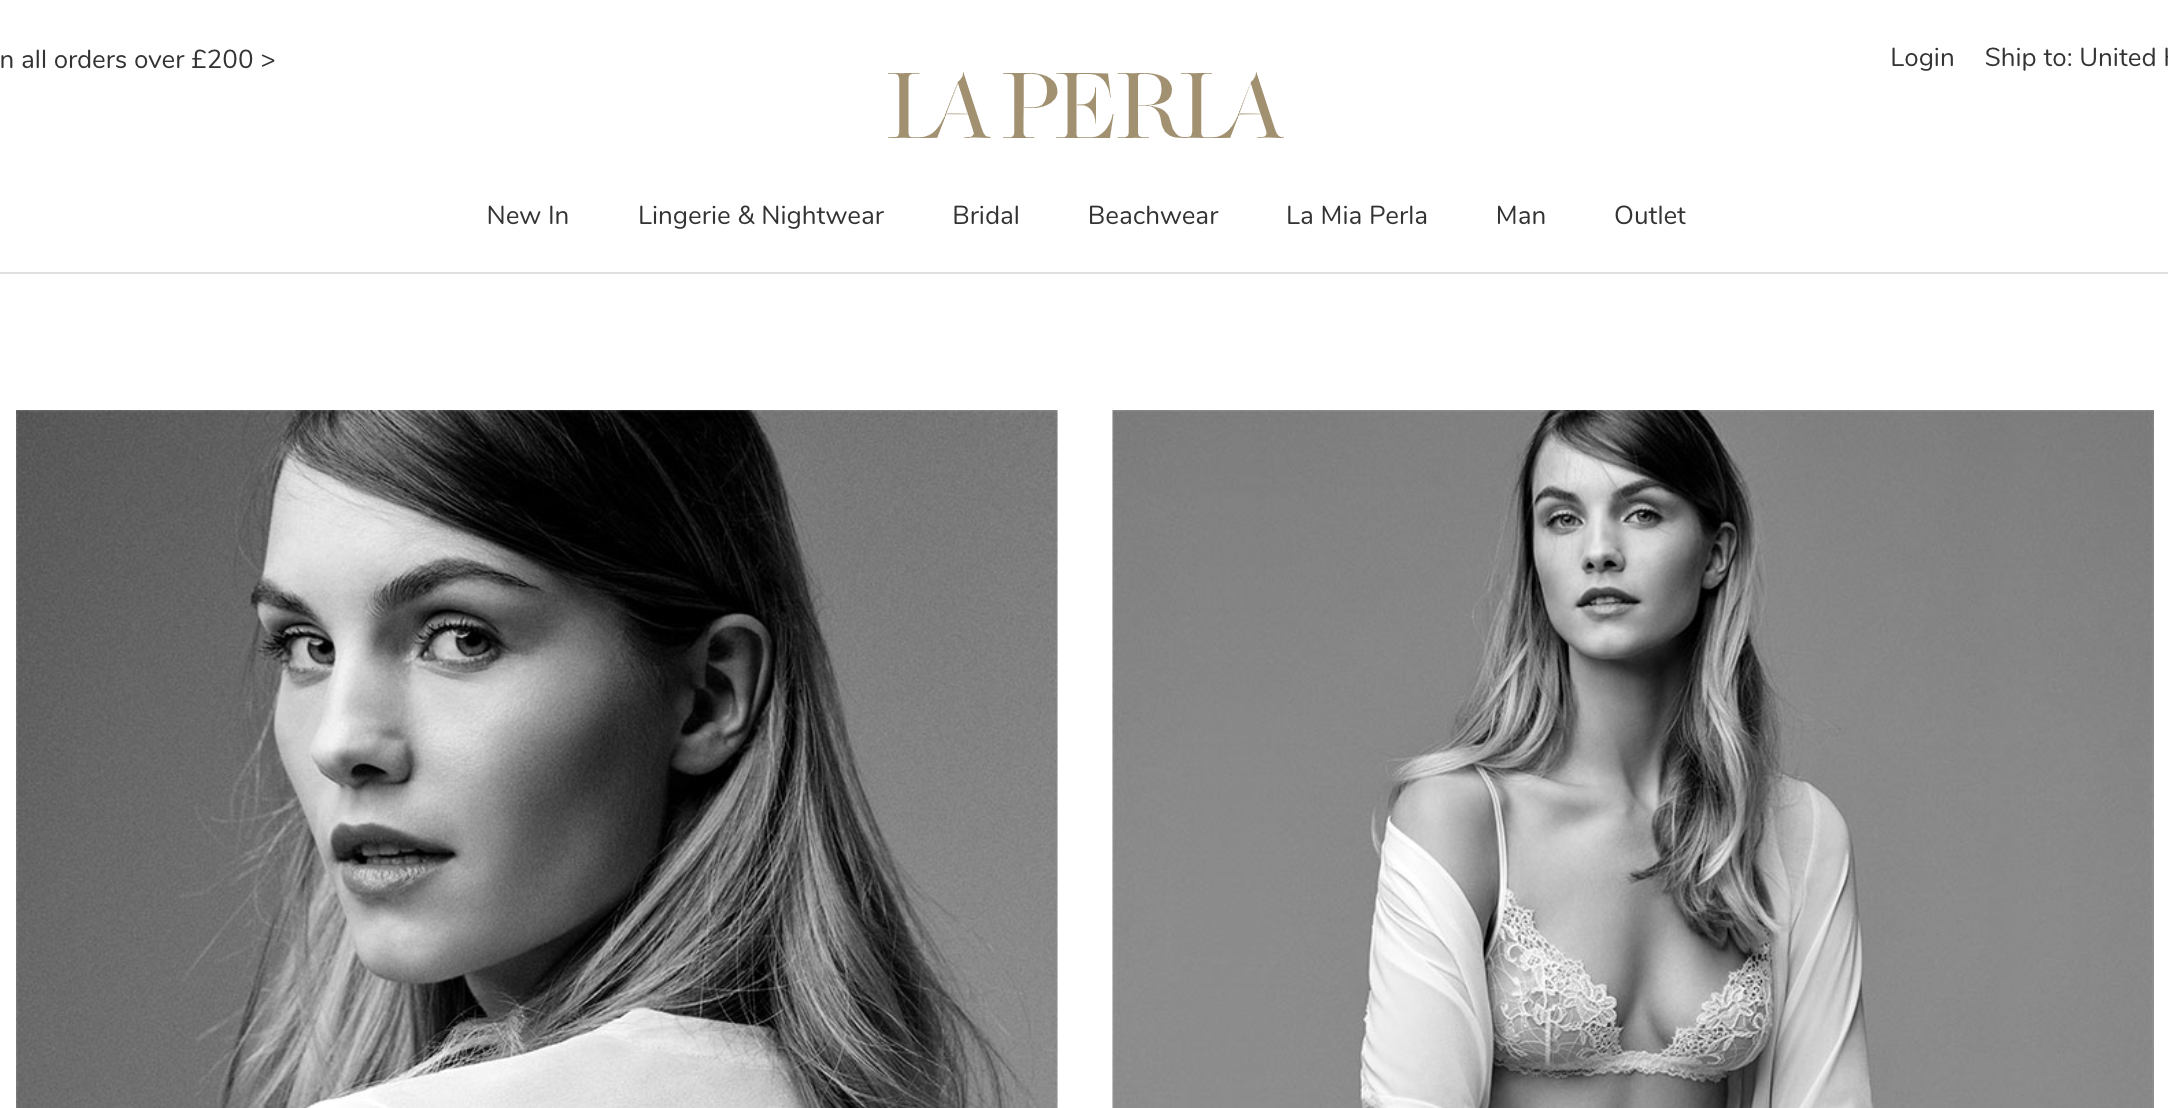 La Perla   Global eCommerce Strategy - Across 9 Territories